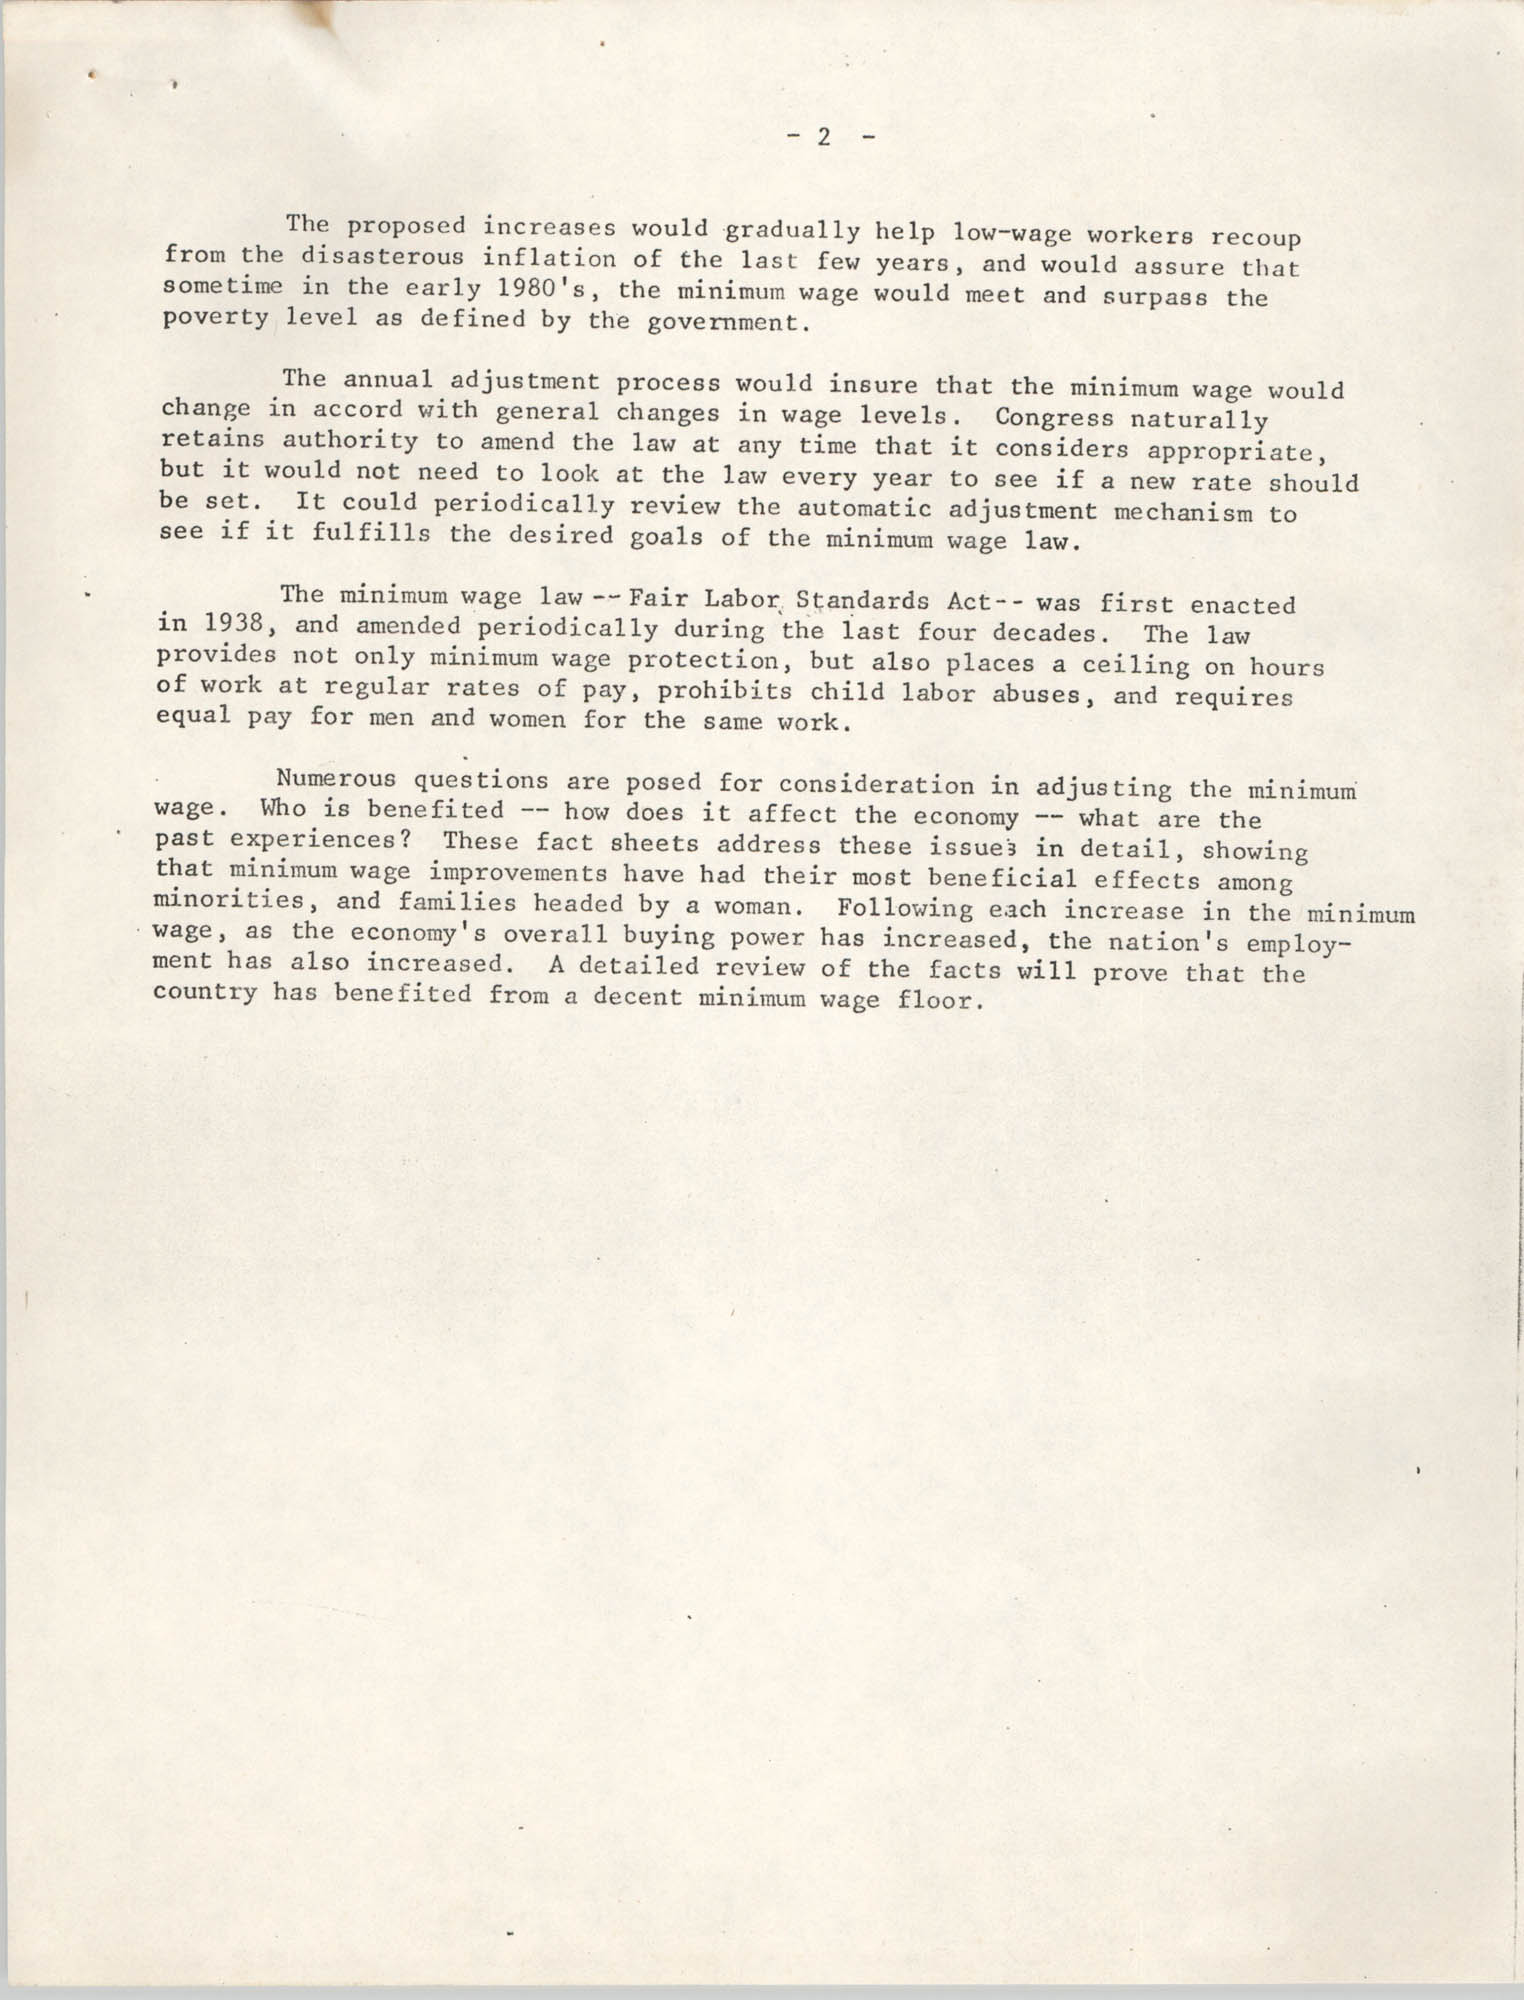 1977 Amendments to the Fair Labor Standards Act, Page 2